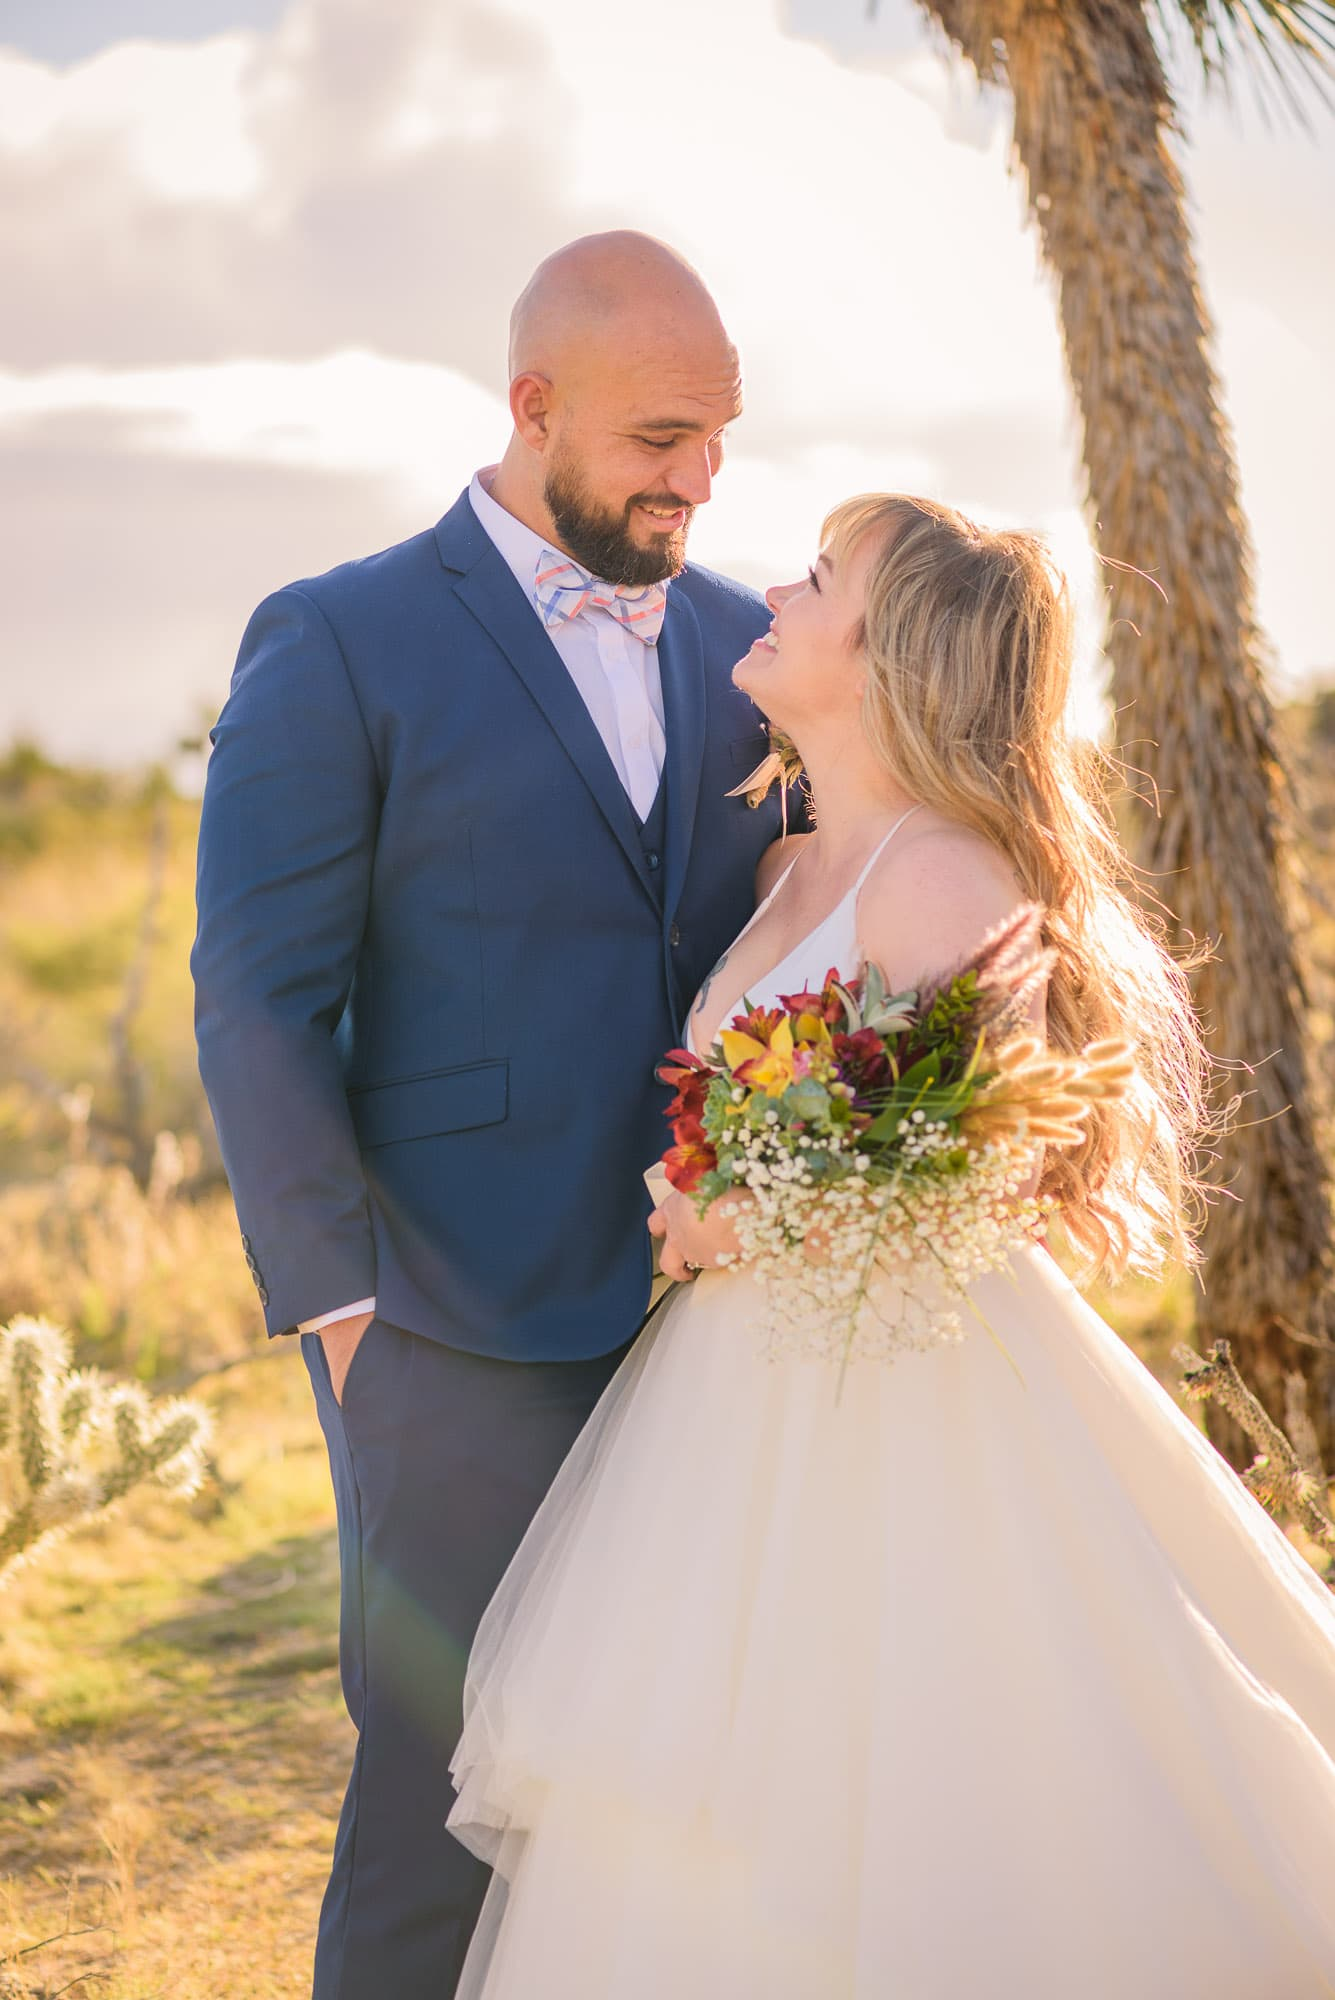 036_Alan_and_Heidi_Joshua_Tree_Spring_Elopement